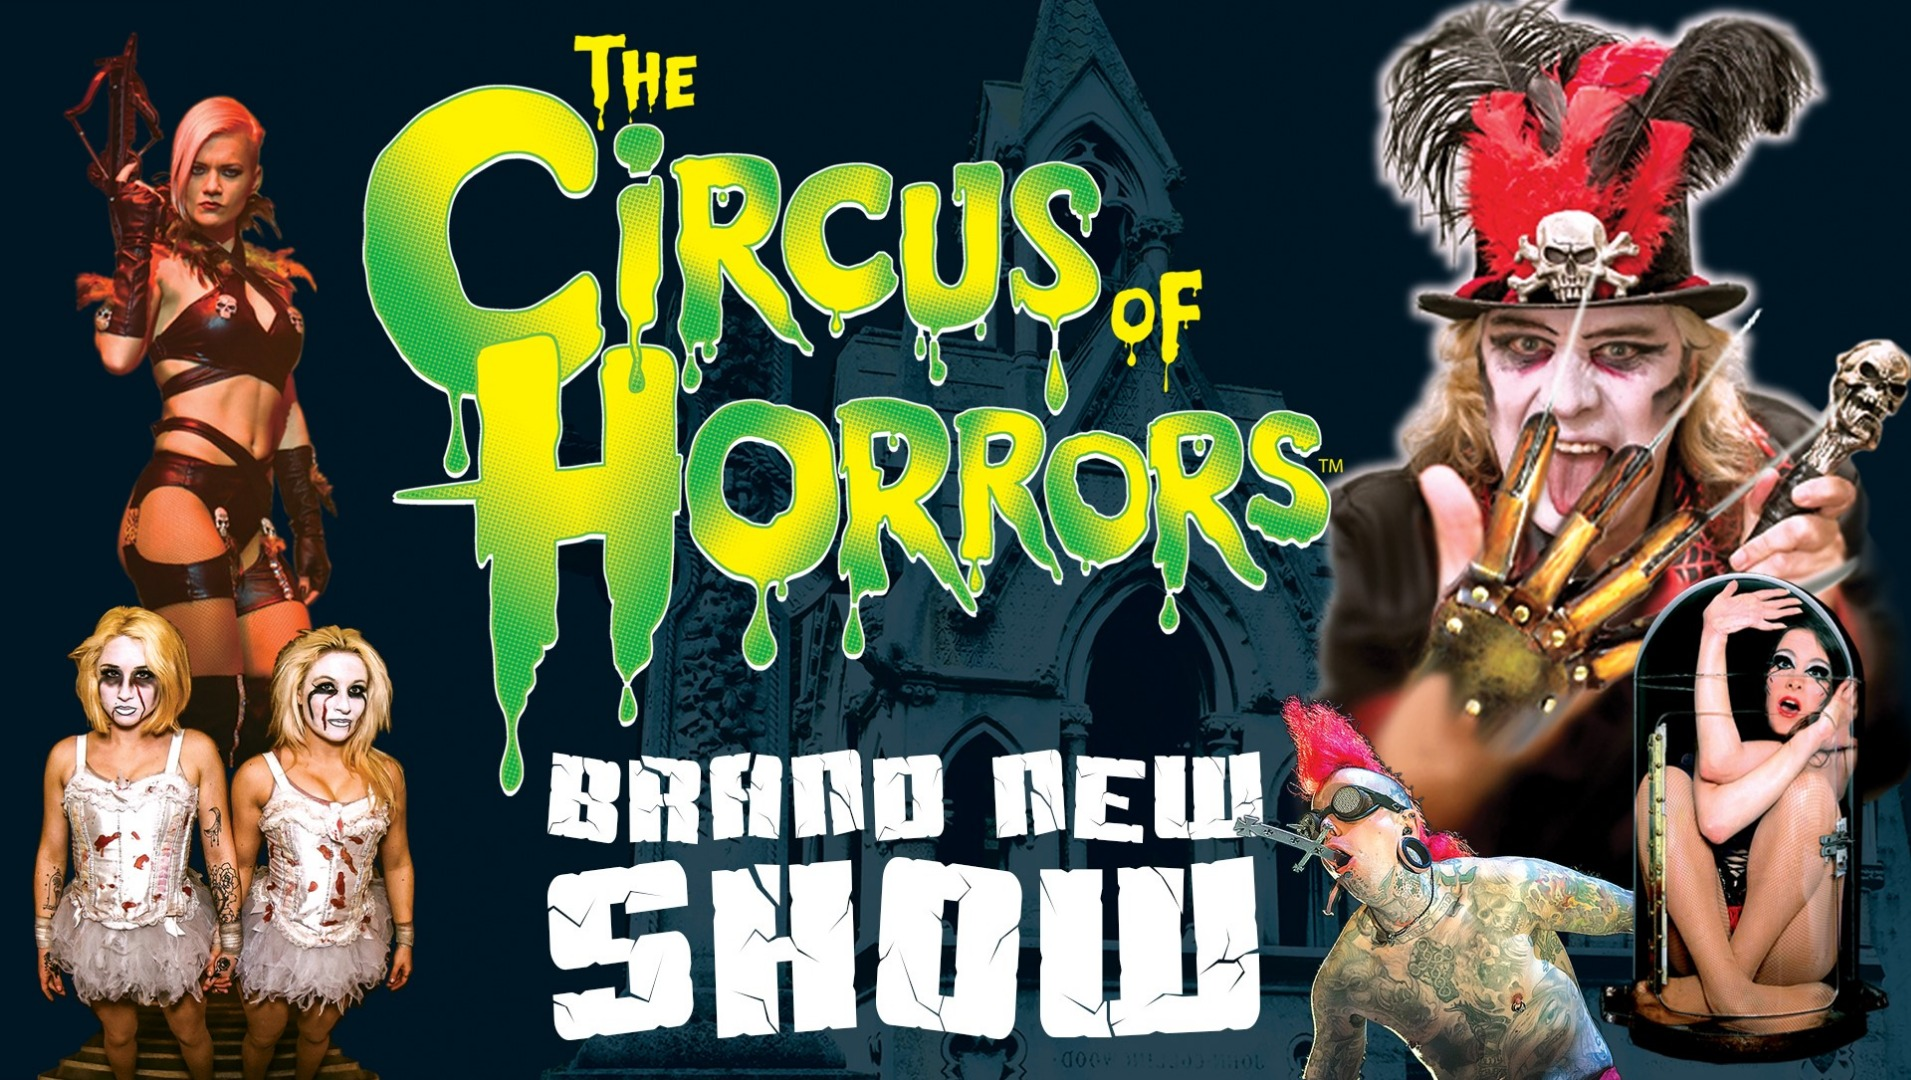 The Circus of Horrors Returns to Preston with a Brand New Show